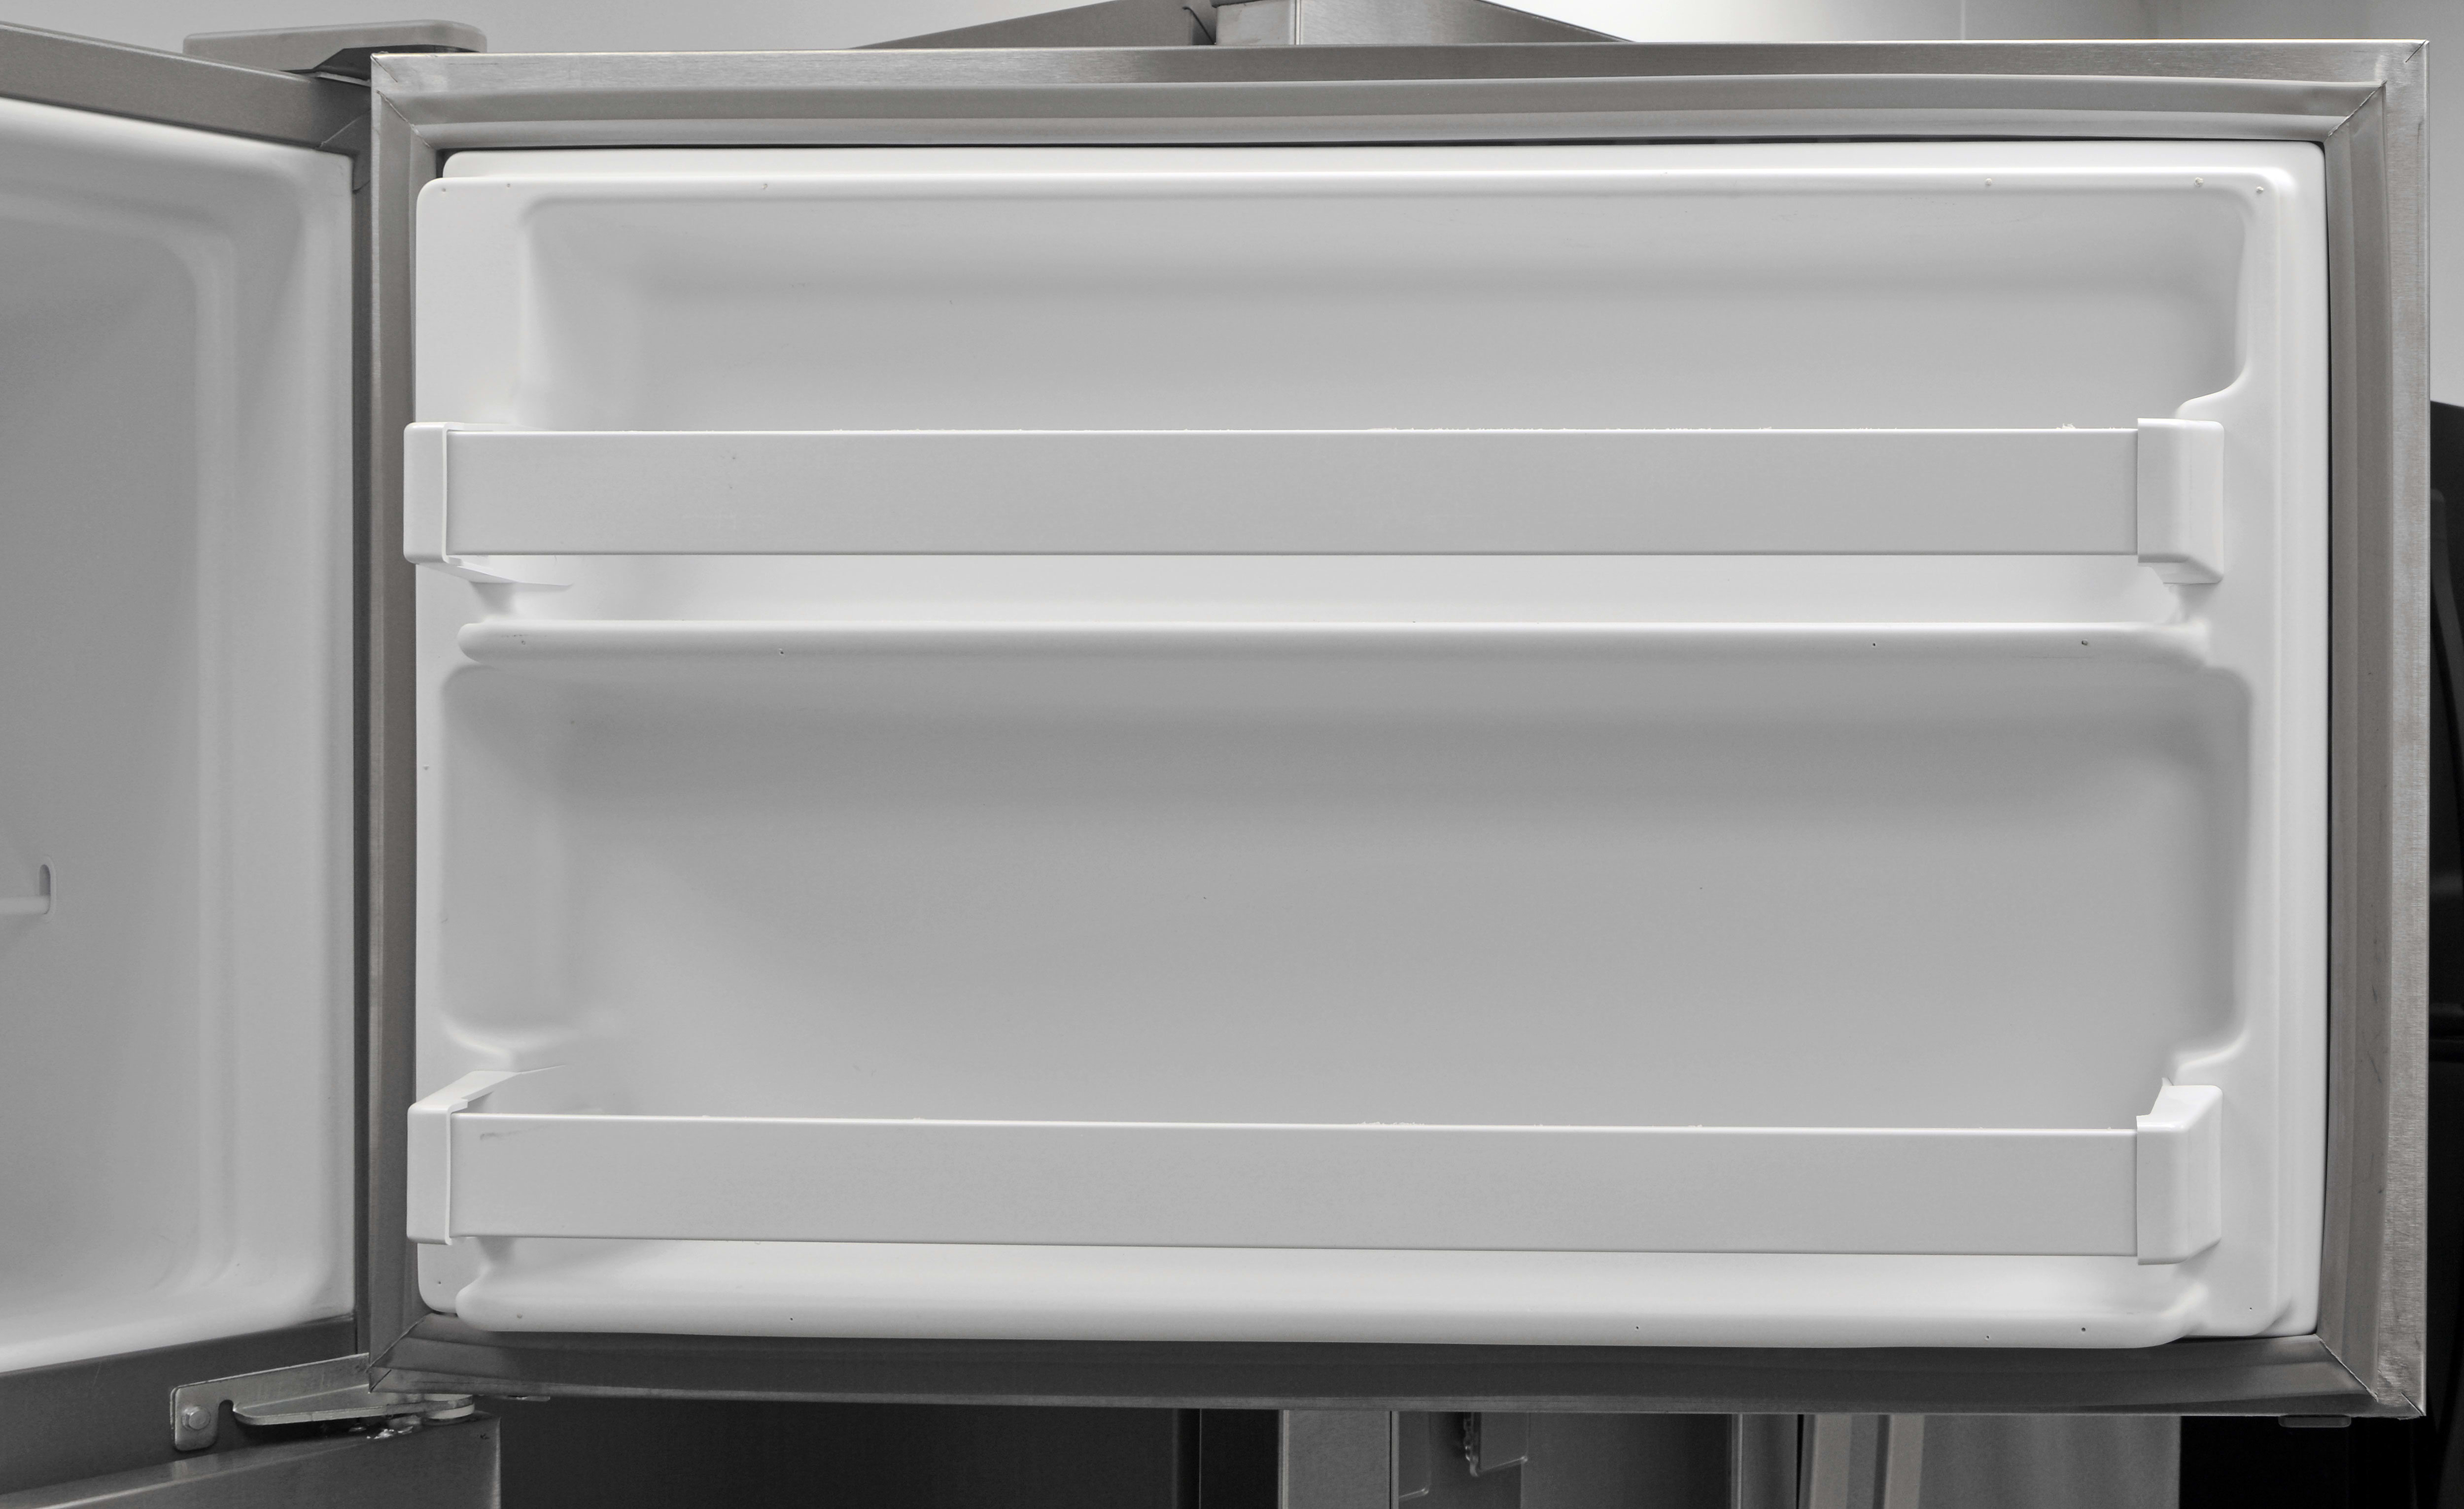 What makes up essentially every freezer door on a budget fridge like the Whirlpool WRT311FZDM? Two basic fixed shelves.